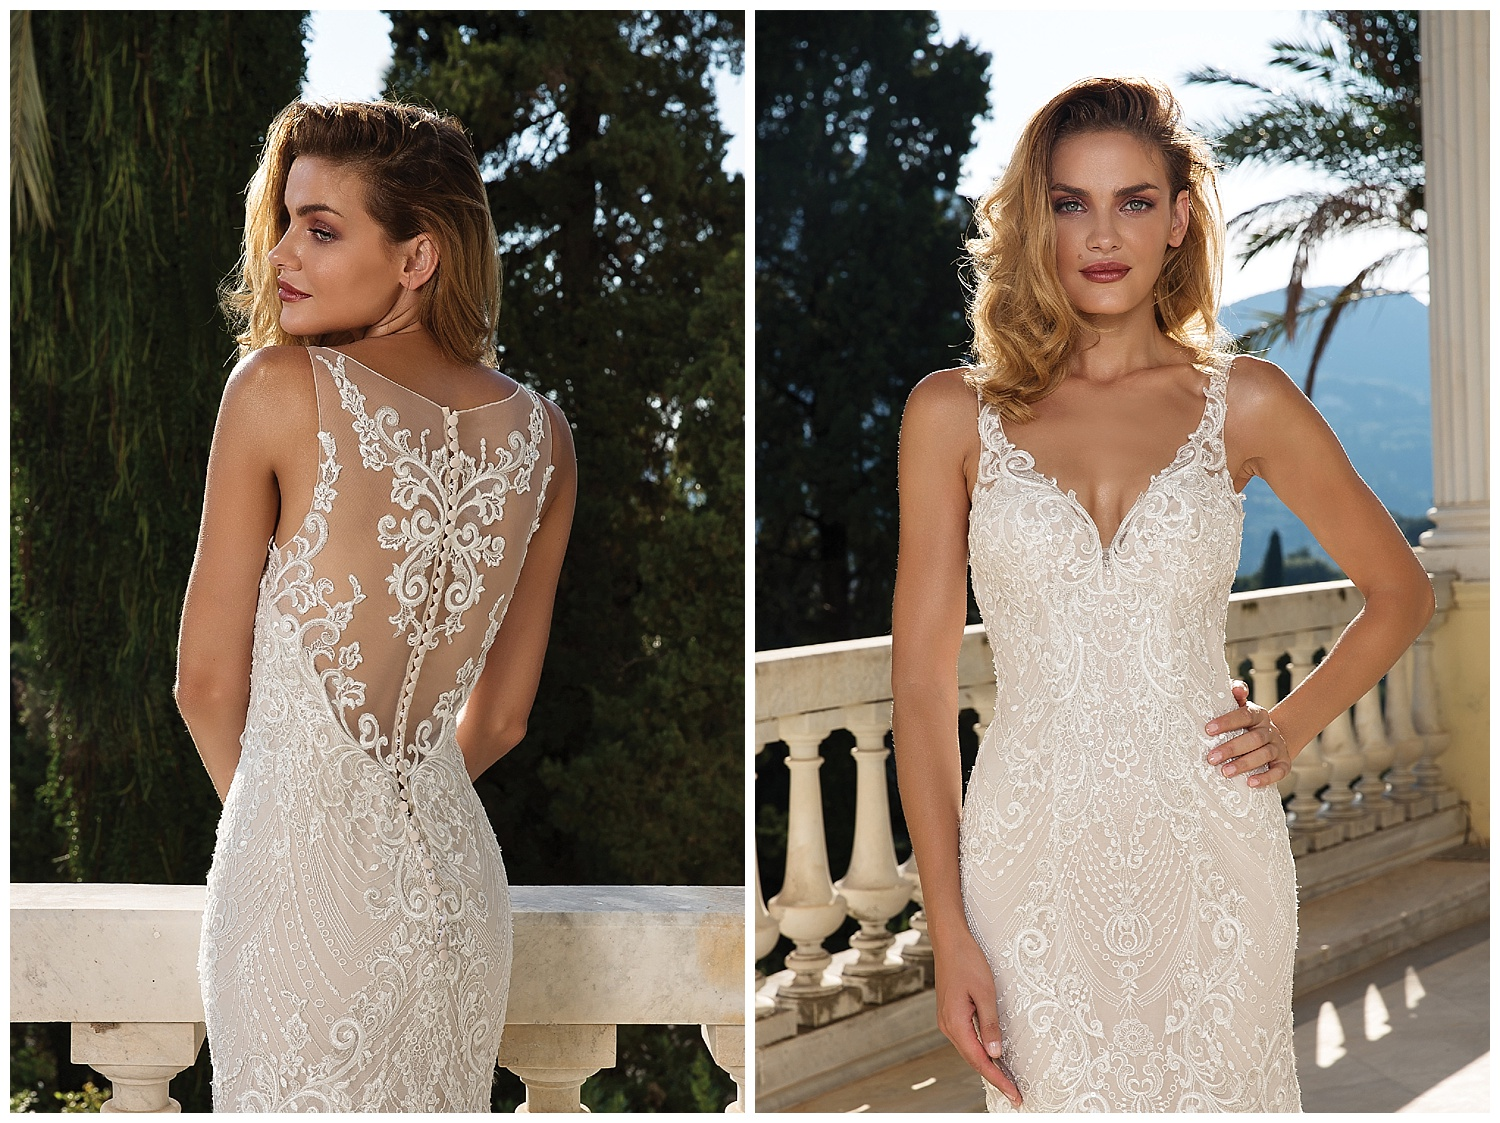 justin-alexander-88088-fitted-lace-wedding-dress-epiphany-boutique-carmel-california.jpg